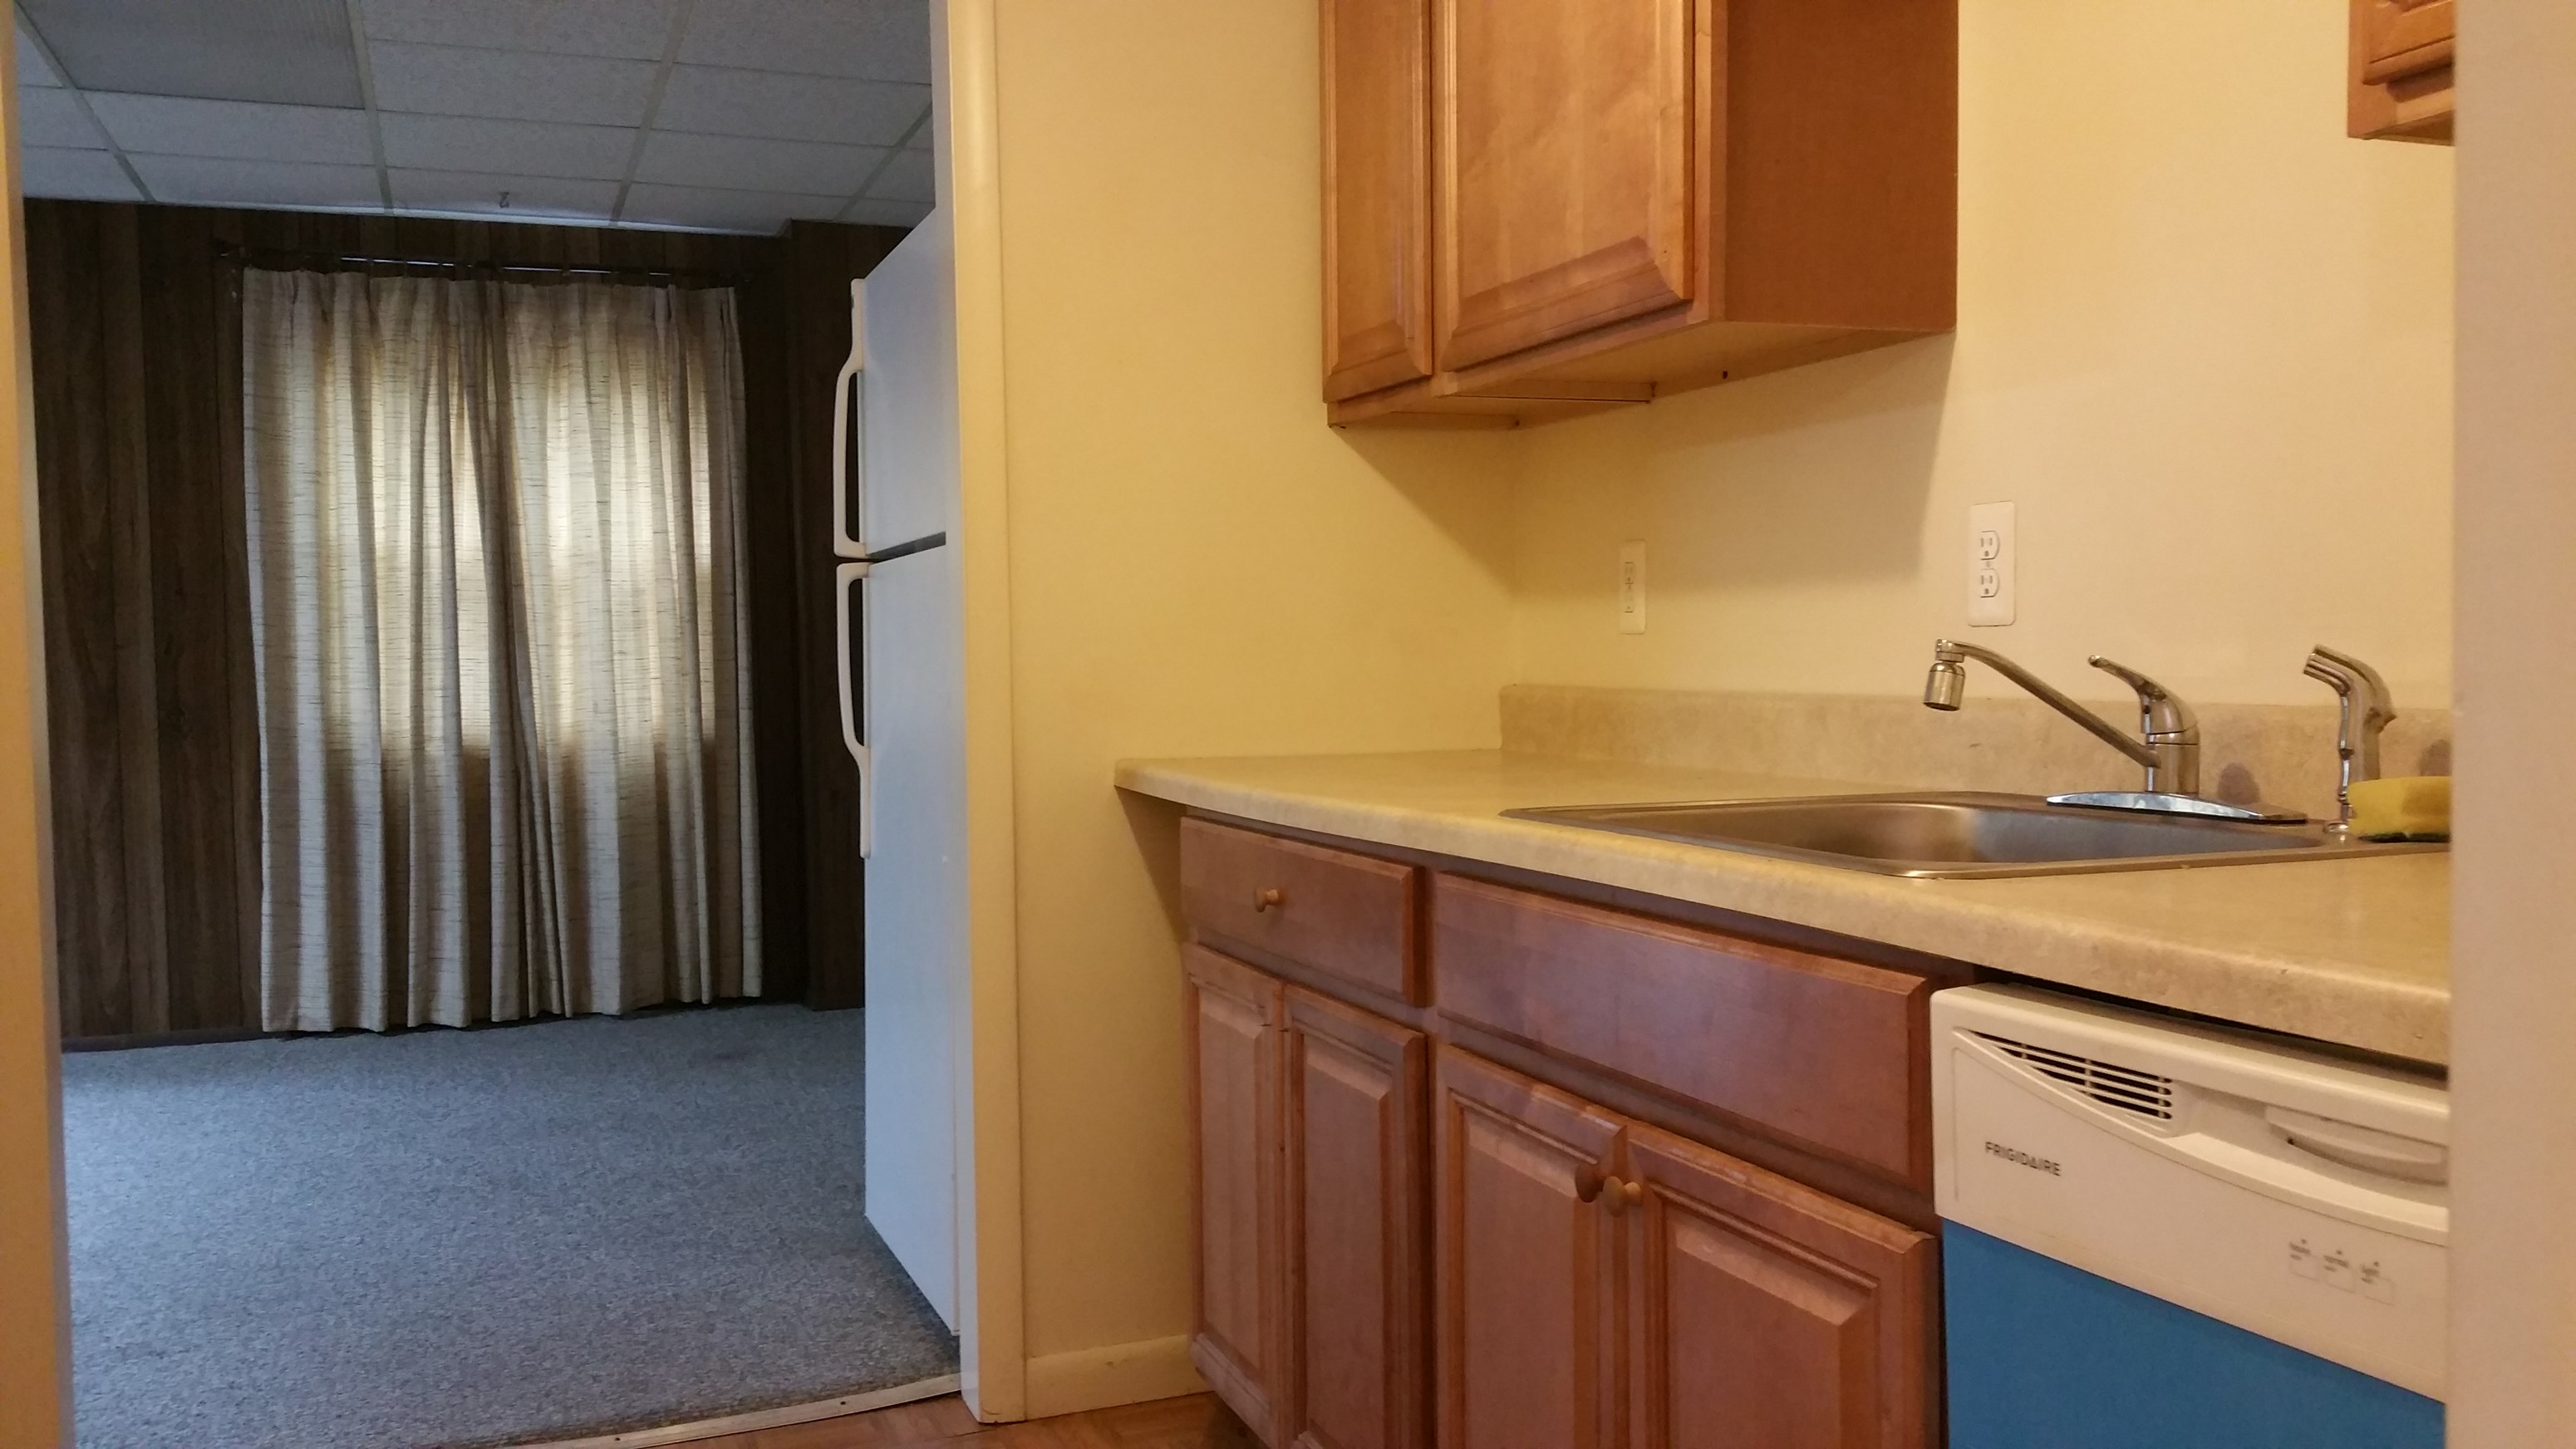 basement for rent in woodbridge va 707010 sulekha roommates